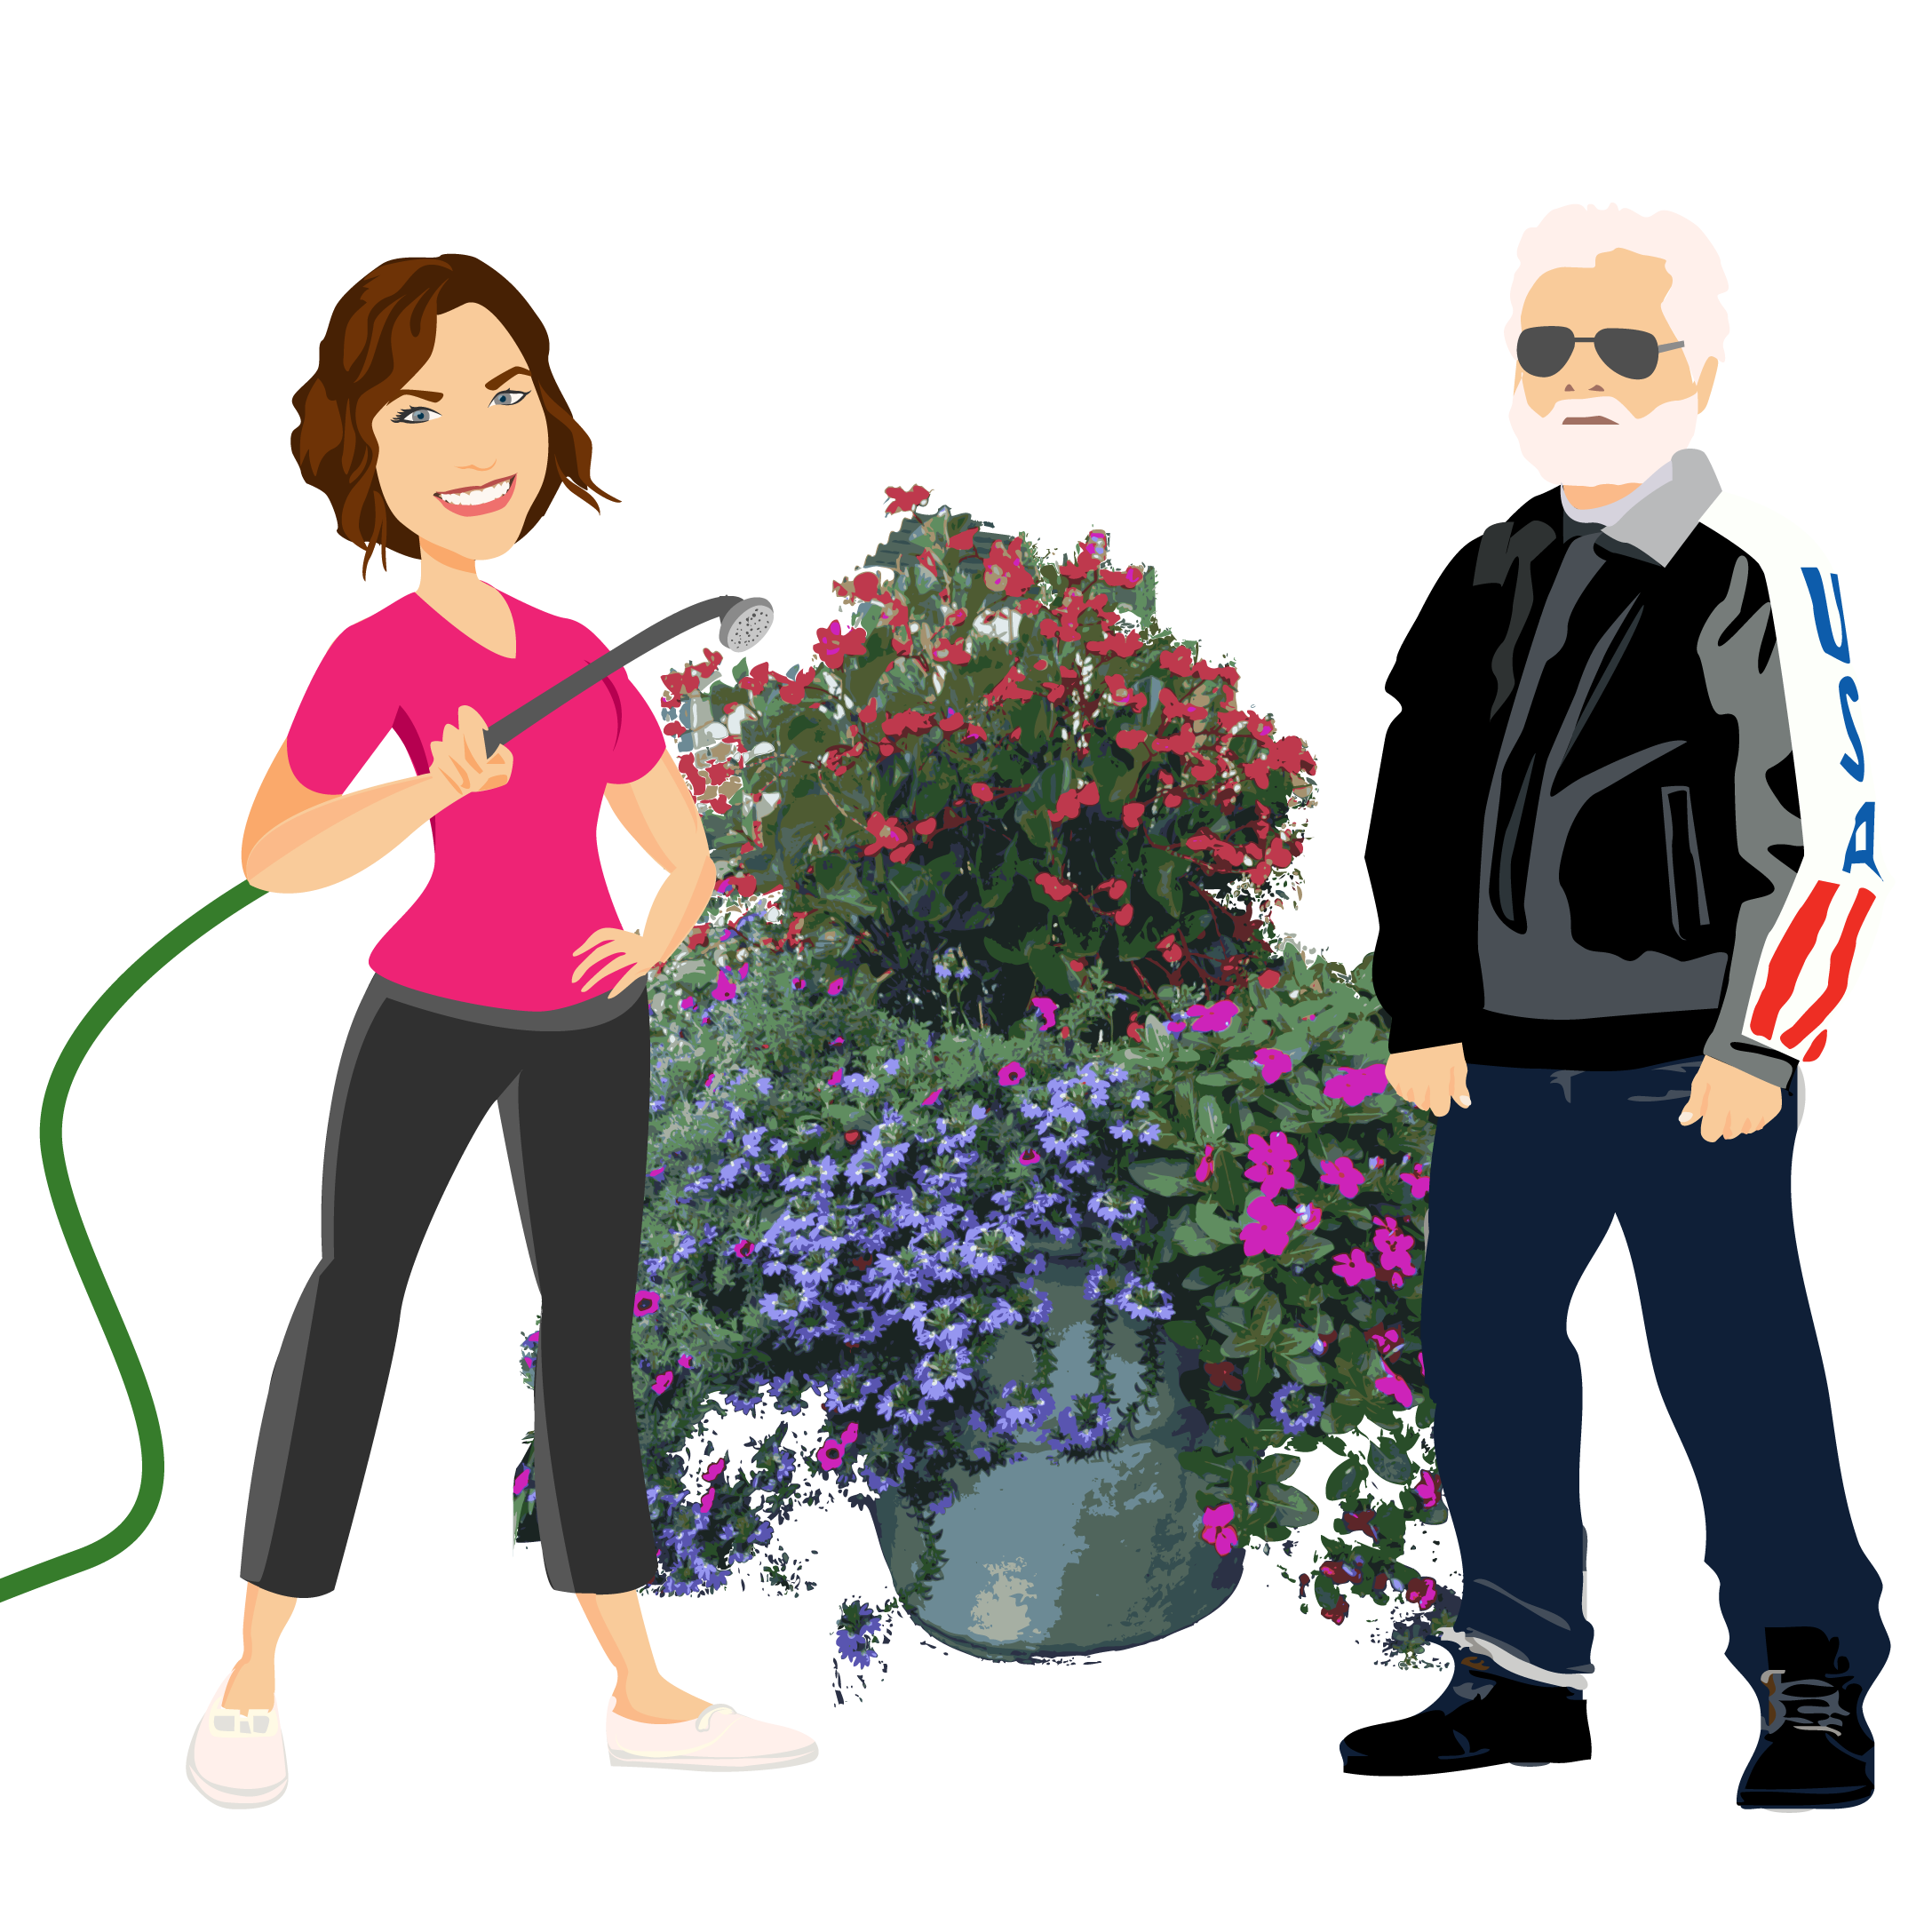 Final Design of Custom Portrait illustration - Here is the final design that Haley approved. It is a beautiful vector illustration of her and the WJGA 92.1 station manager. This type of design works wonderfully for landscaping professionals or radio personalities.